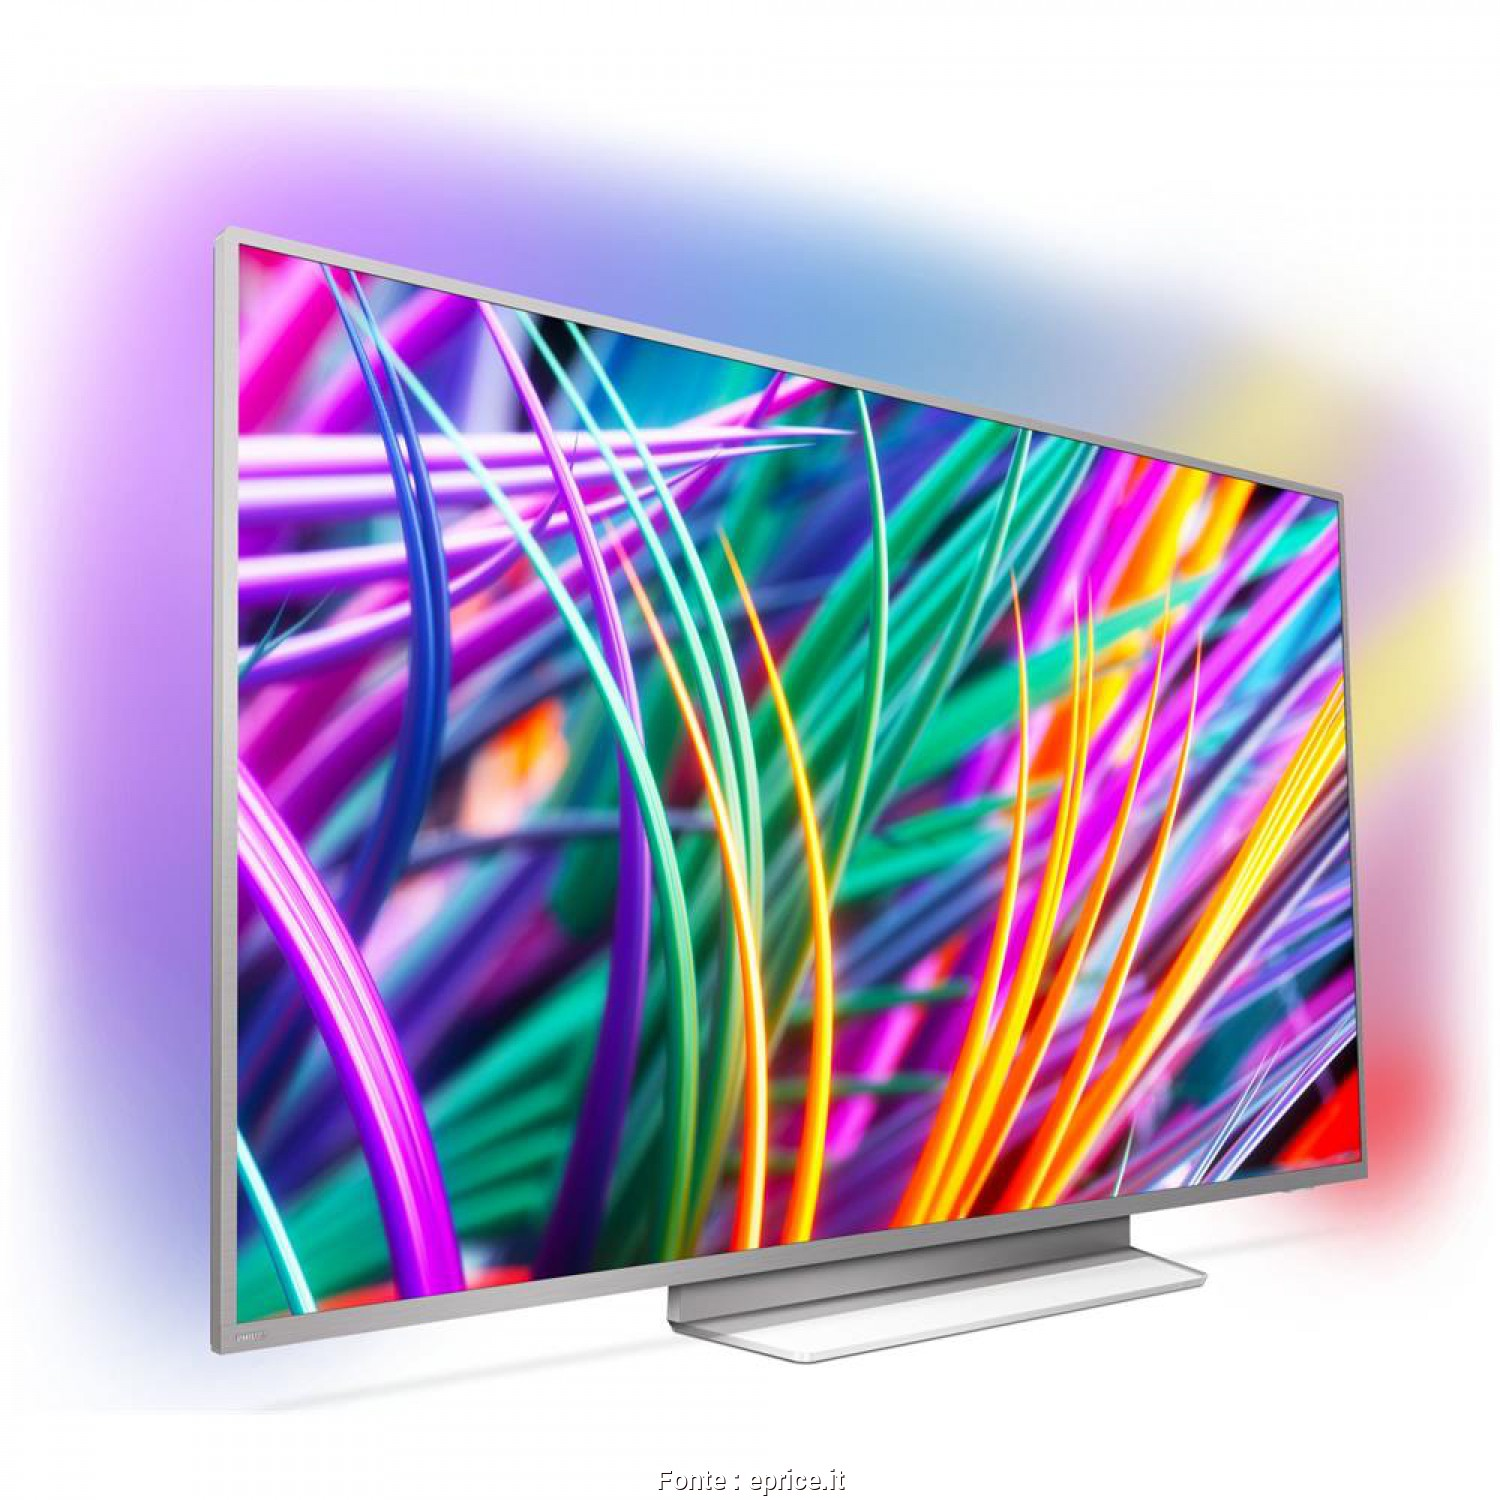 Distanza Divano Tv 50 Pollici, A Buon Mercato PHILIPS TV, Ultra HD 4K, 49PUS8303/12 Android TV Ambilight